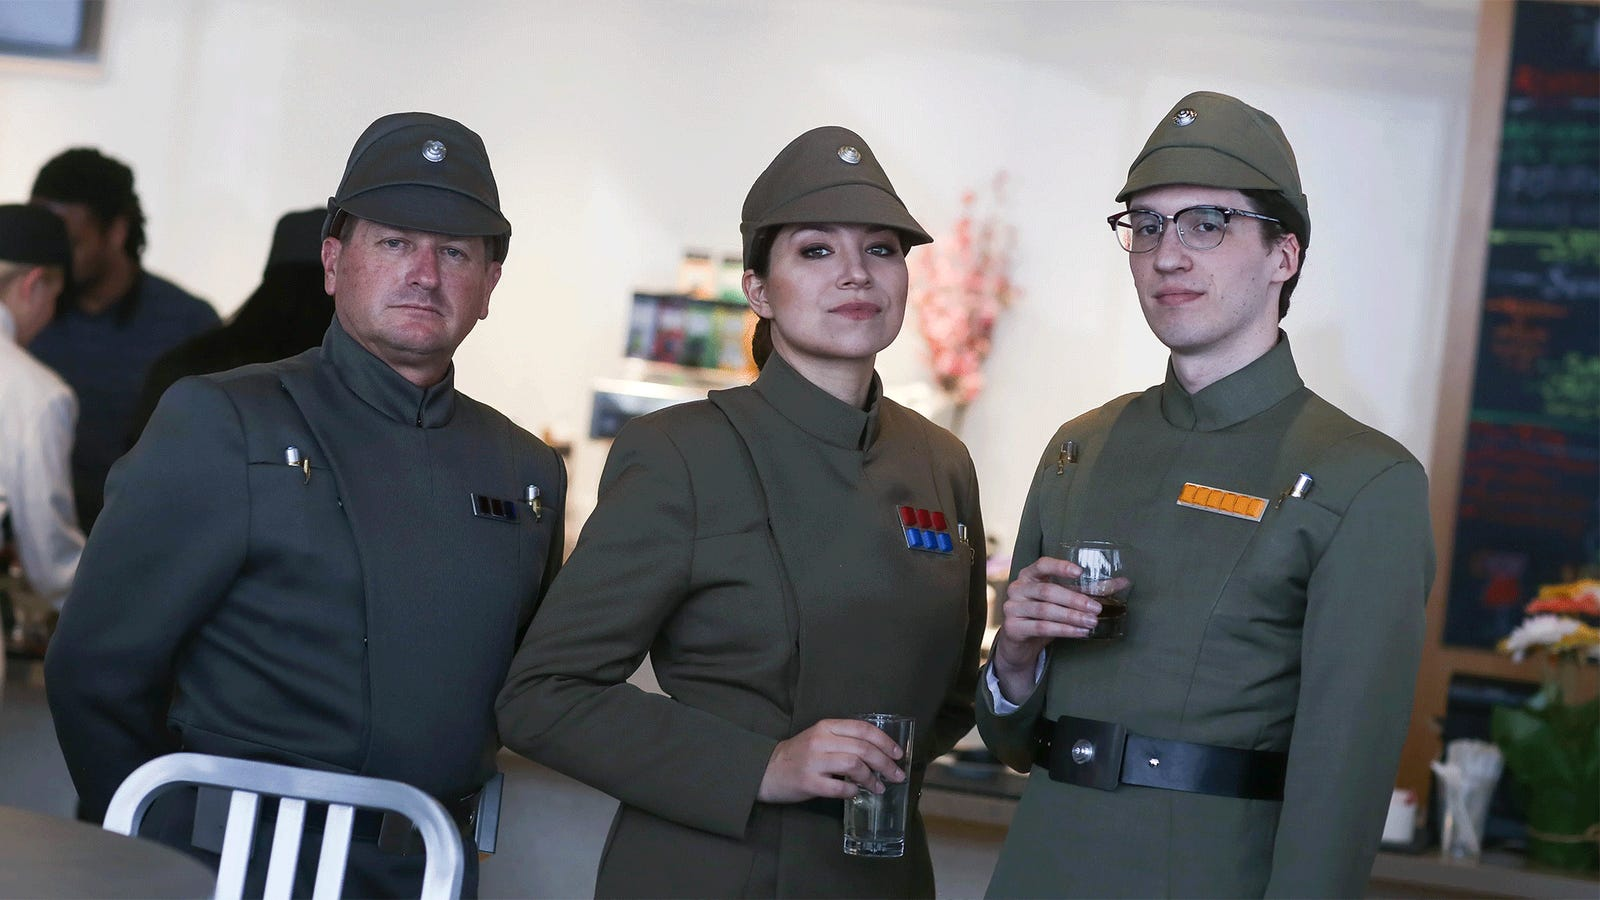 The Empire Had A Cocktail Party, No Rebels Allowed